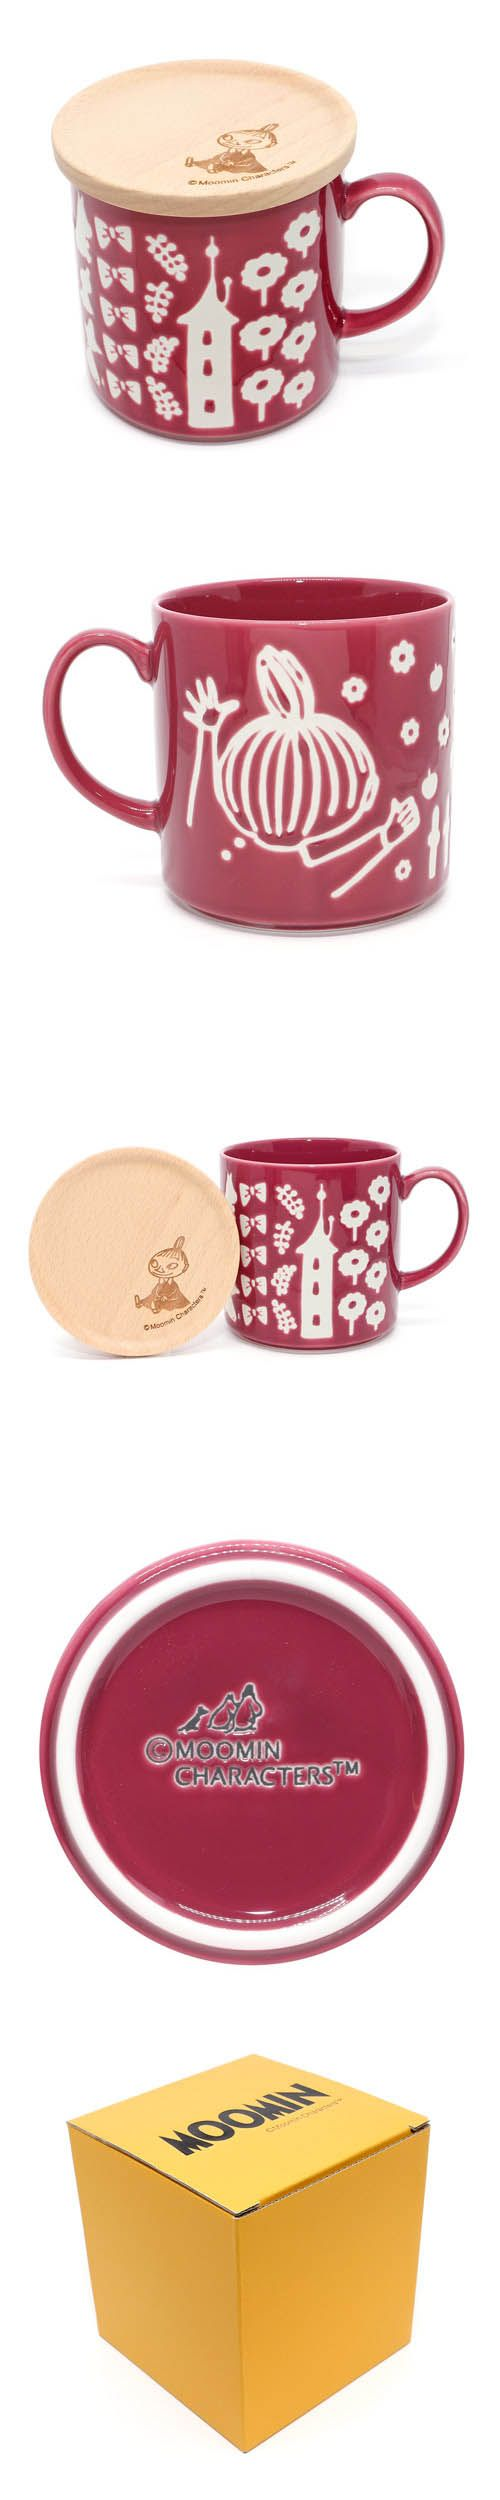 Muumi Moomin Valley Ami red ceramic mug wooden lid box set by YamaKa  KawaMono.com